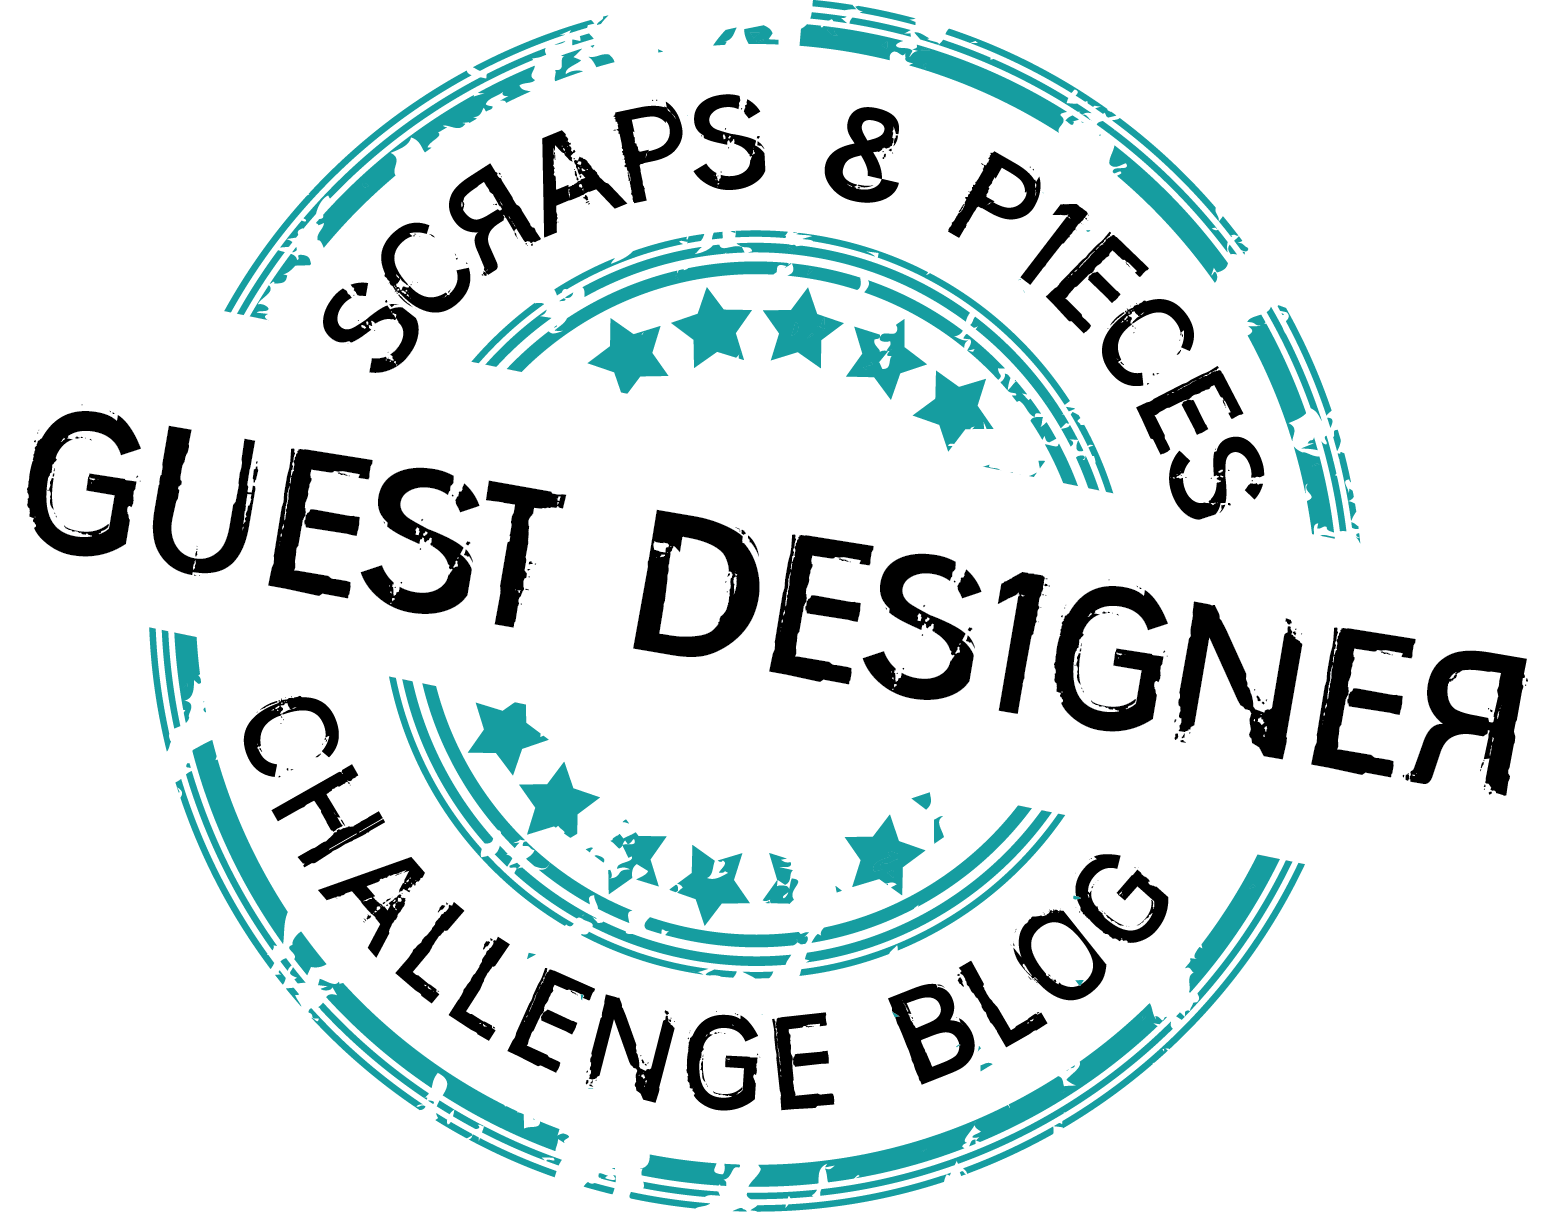 Είσαι Guest Designer? Grab your badge!